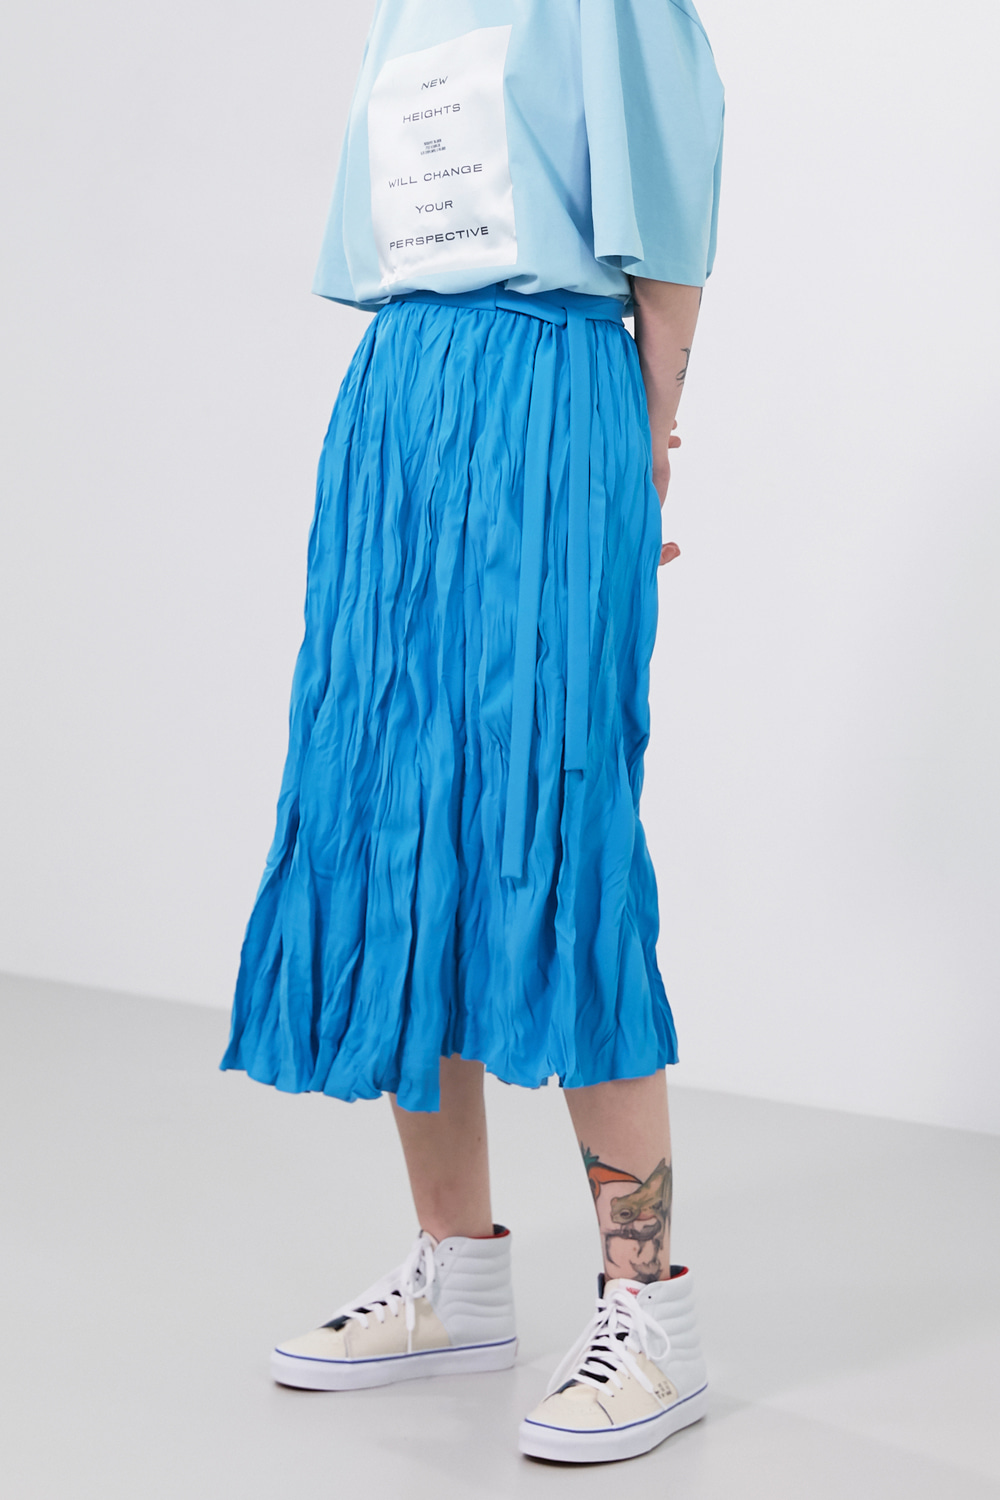 Skirt Pleats Crinkled Splash Blue & Ivory